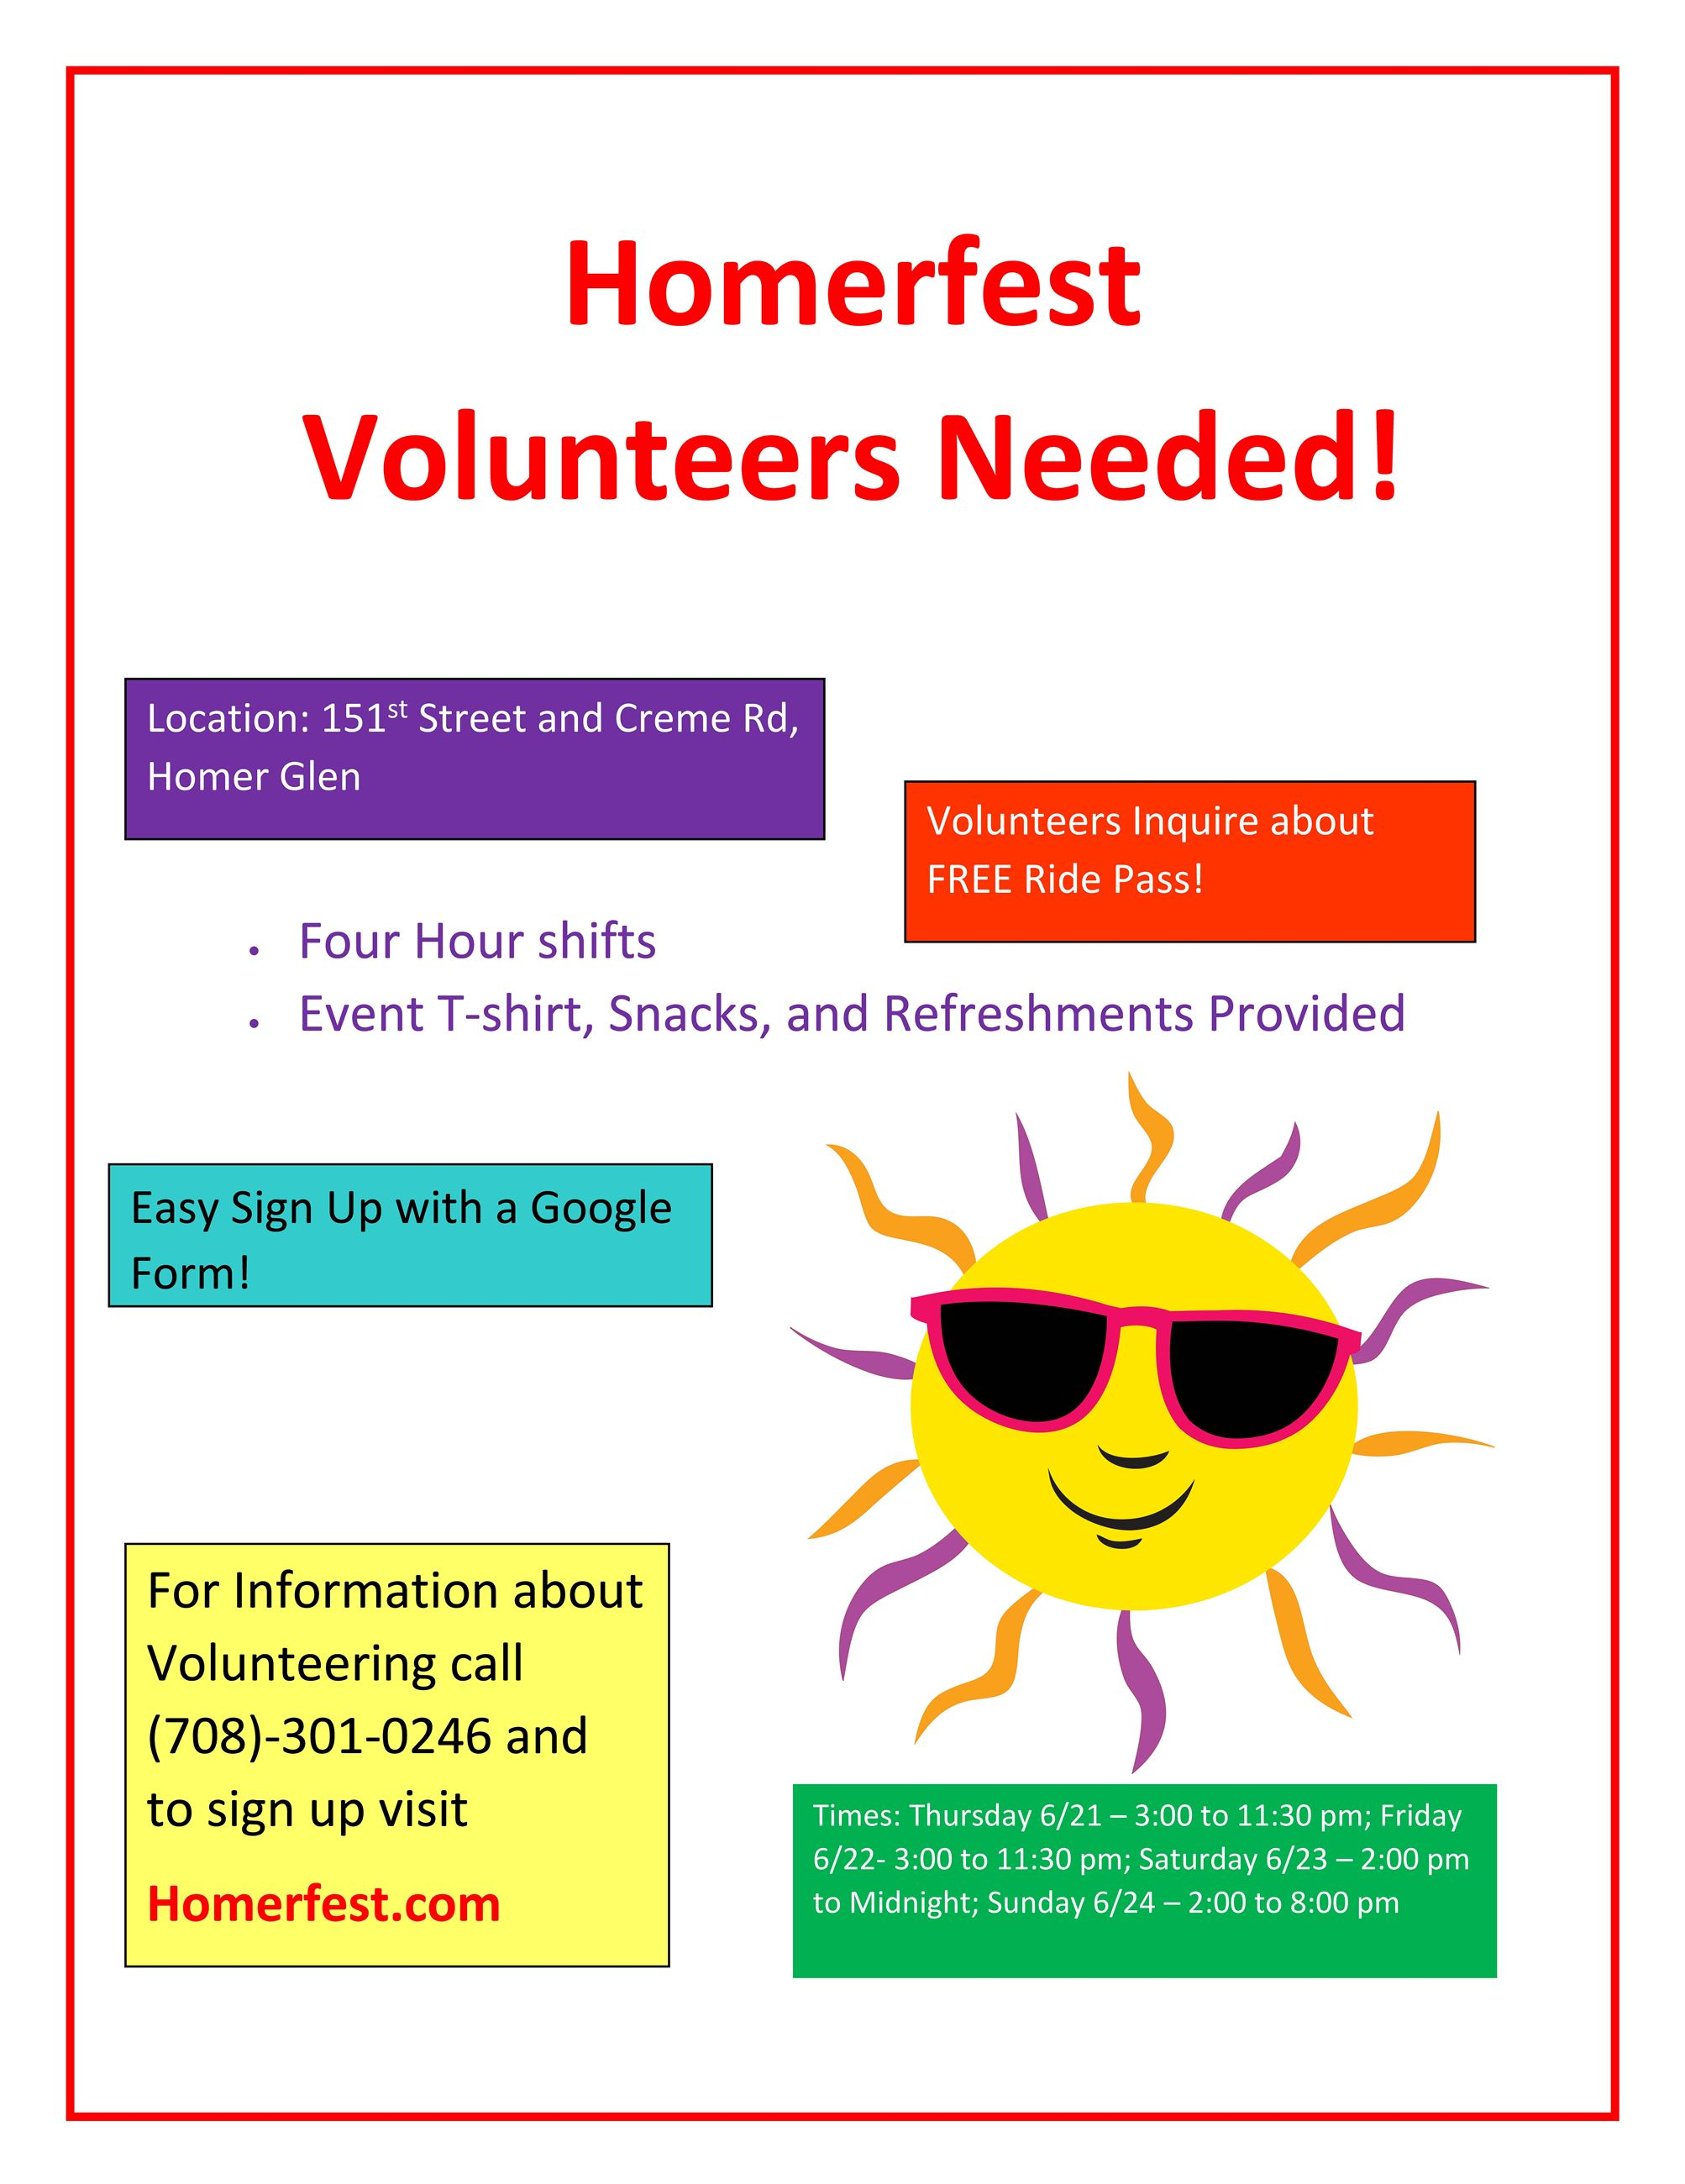 HomerFest Volunteers Needed